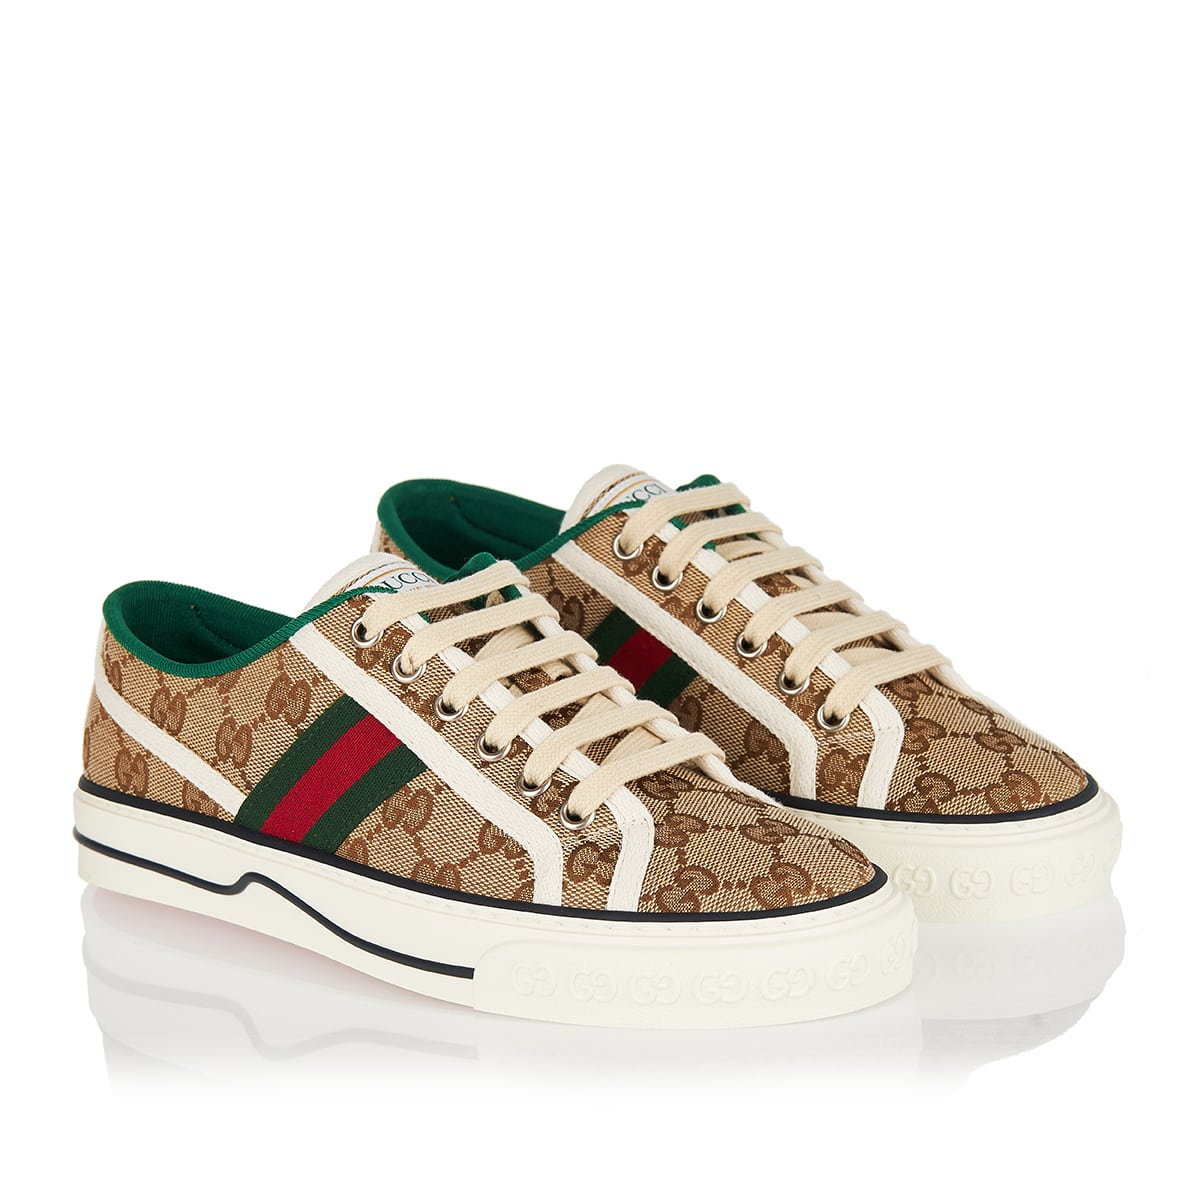 Tennis 1977 GG canvas sneakers